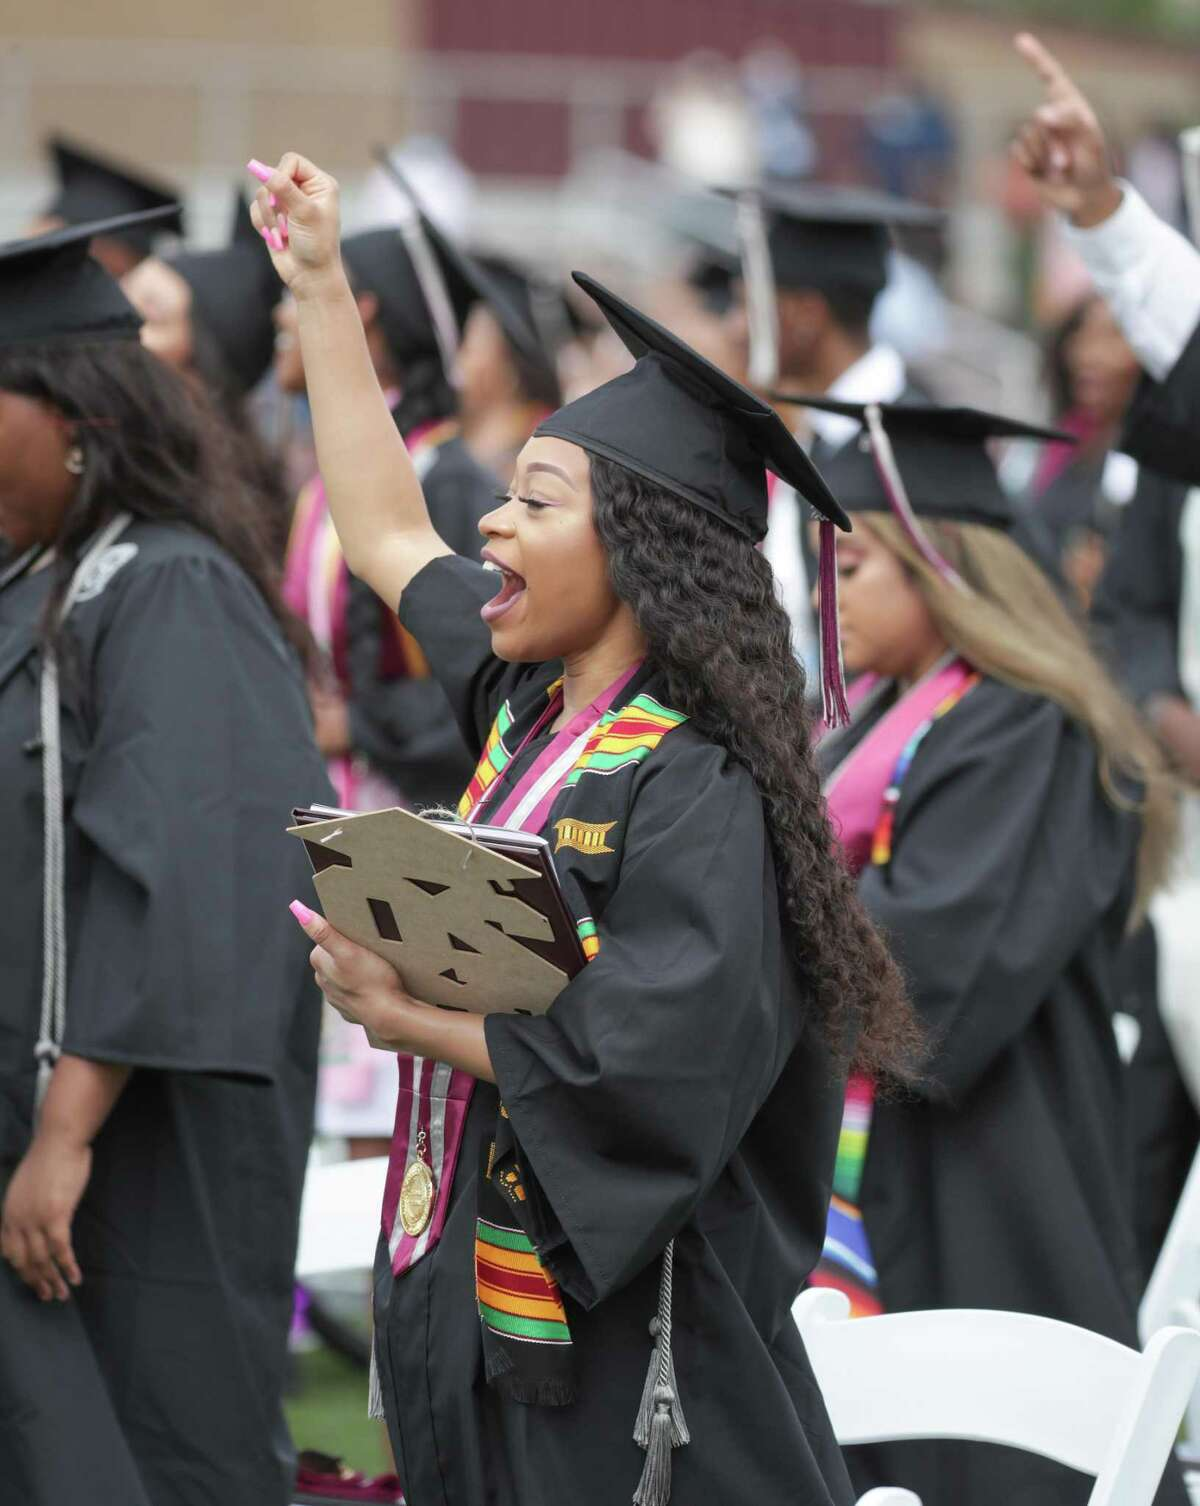 Siete Richardson cheers after graduating in Texas Southern University's Spring 2021 commencement at Alexander Durley Stadium Saturday, May 8, 2021, in Houston.